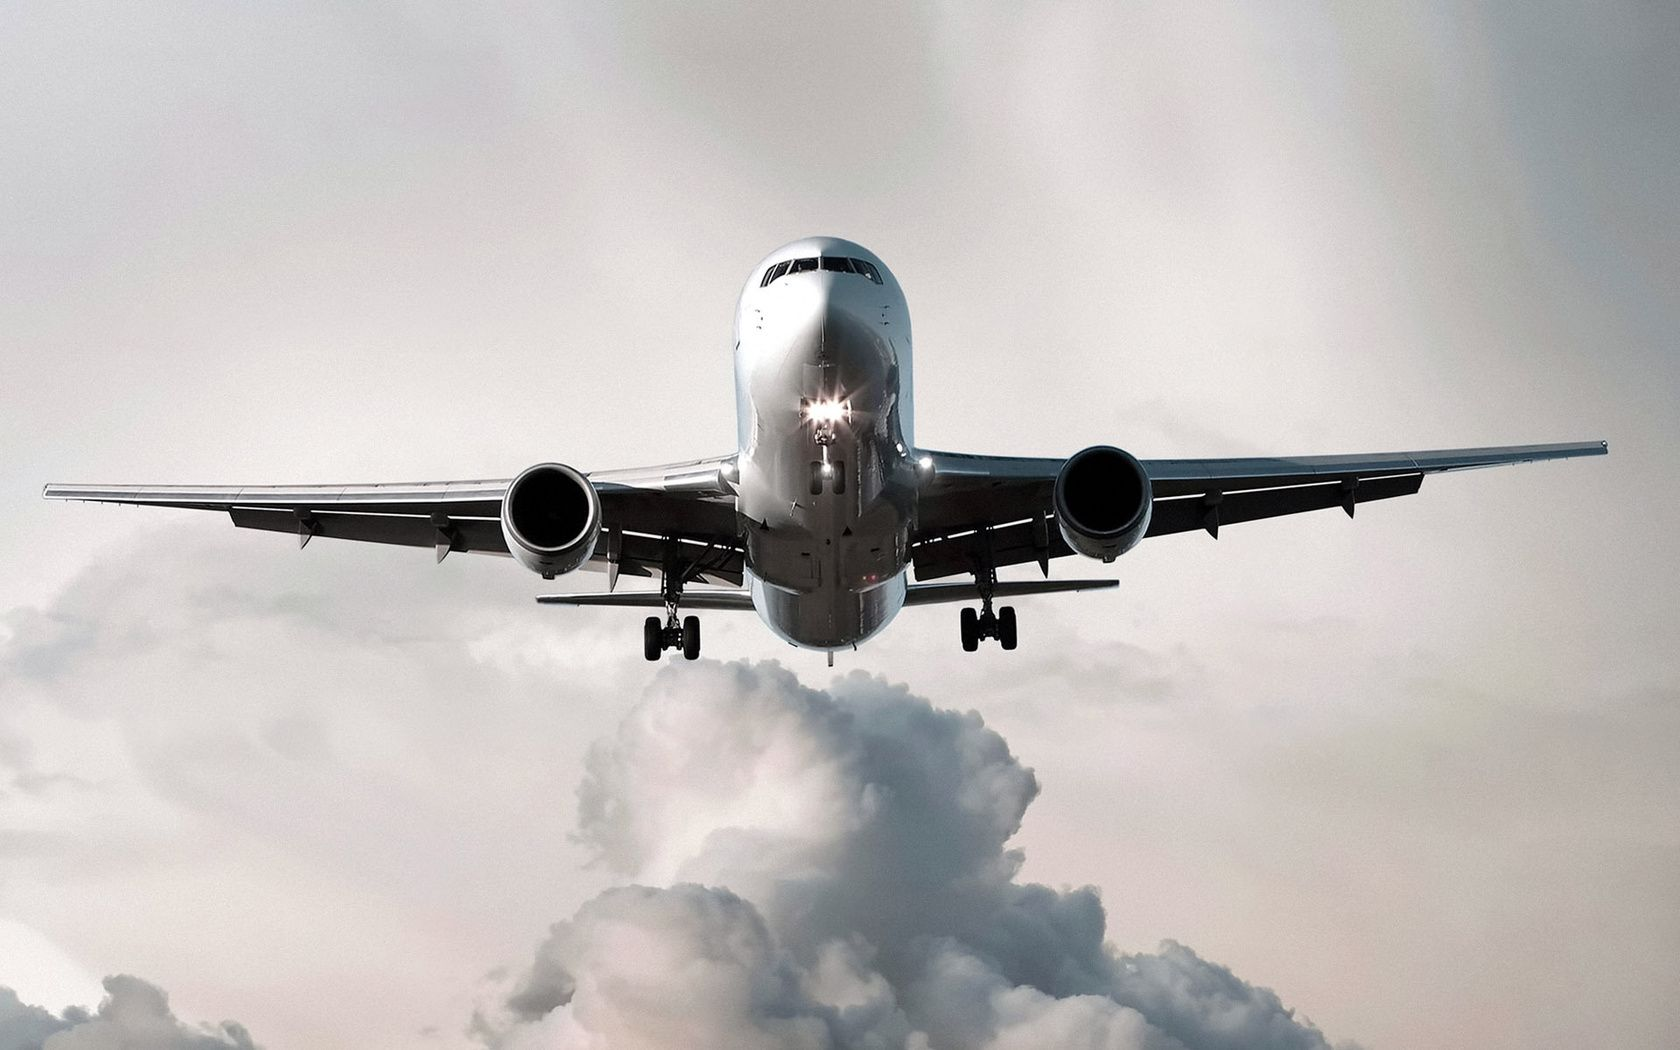 A Plane Taking Off Images 2